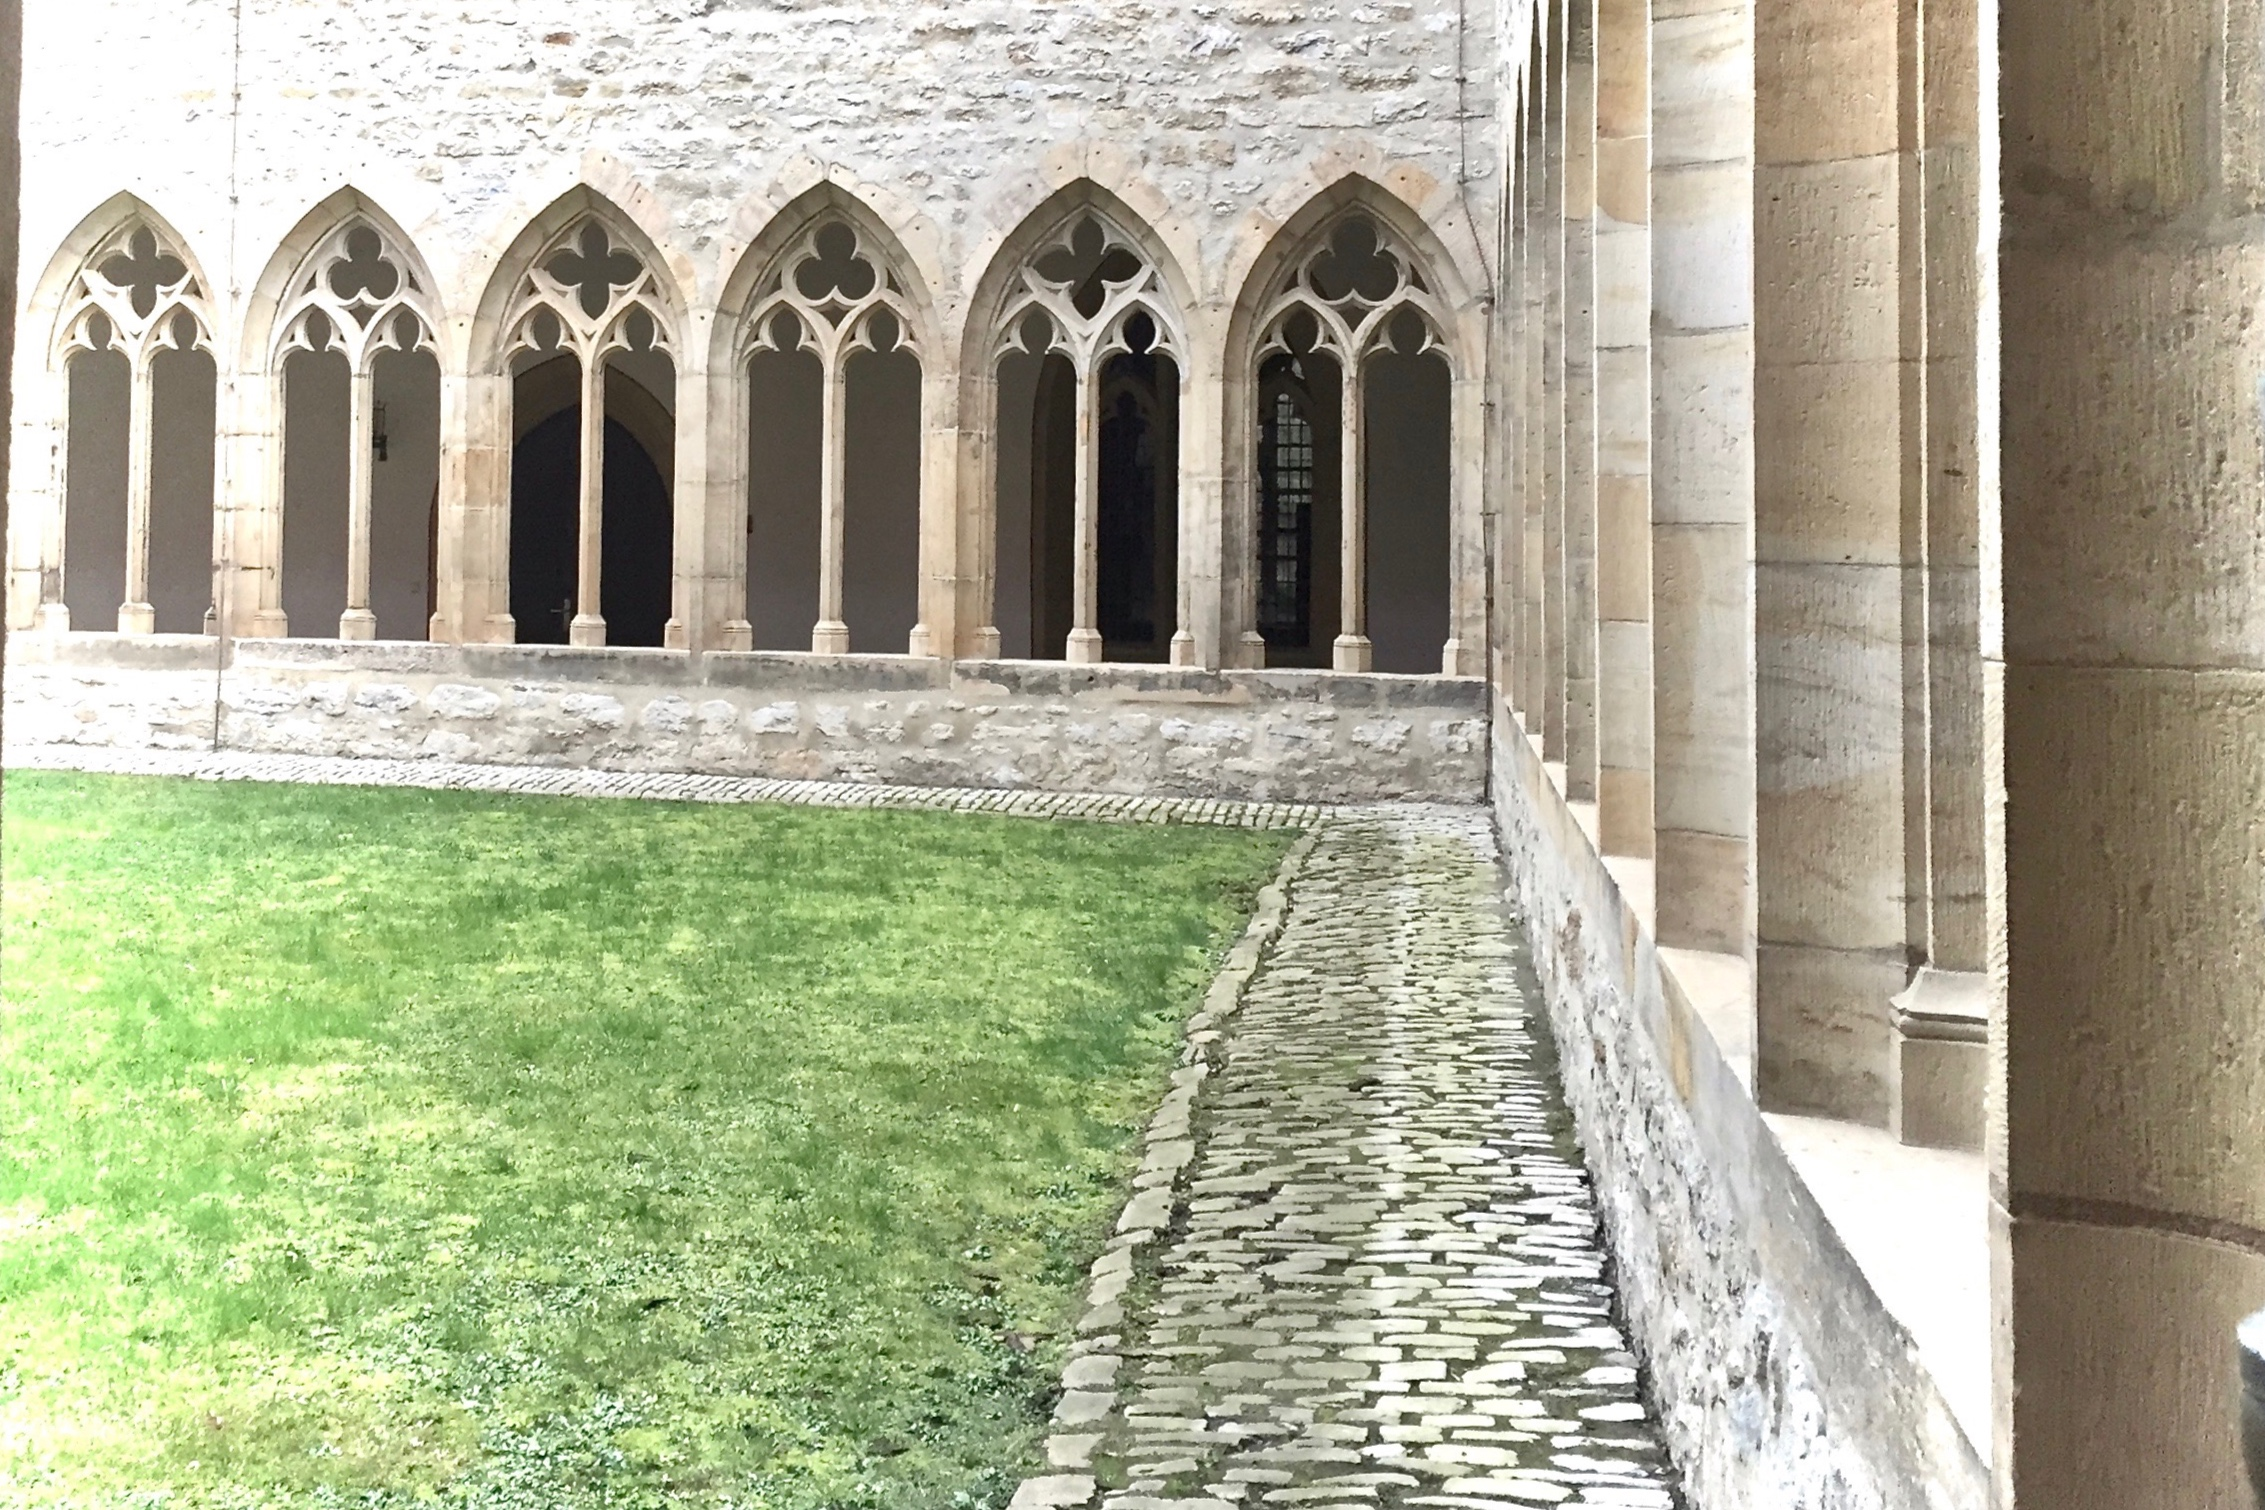 (c) A. Furchert. Part of the cloister walk at the Augustiner Kloster in Erfurt, where Martin Luther started out as a monk.